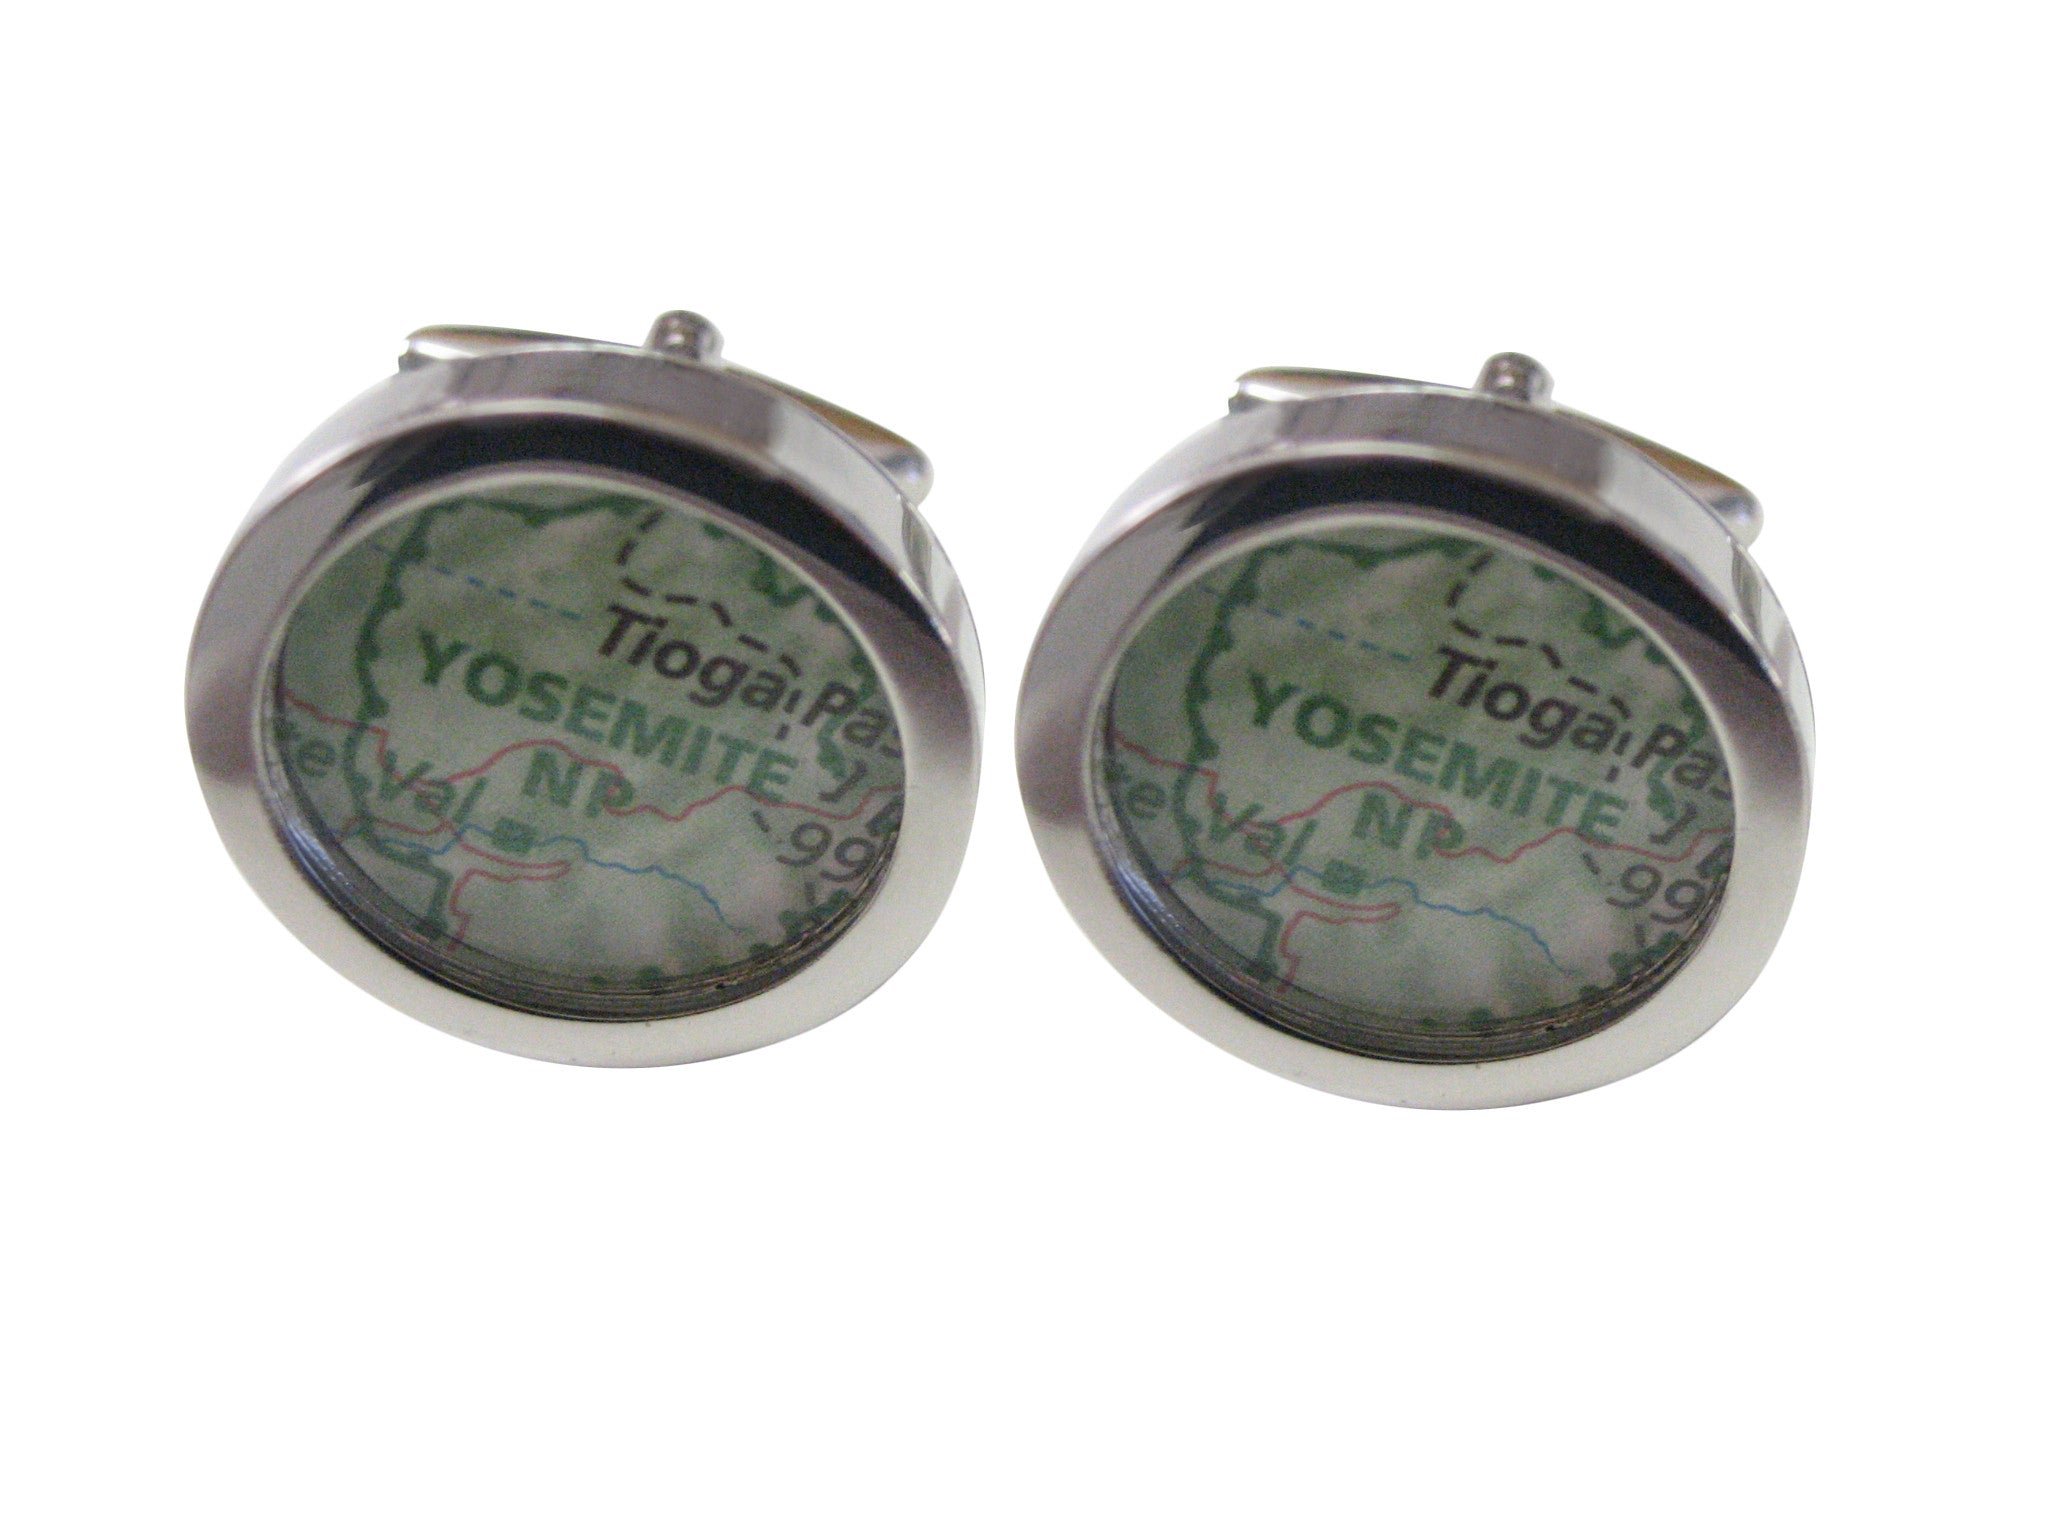 Yosemite National Park Map Cufflinks